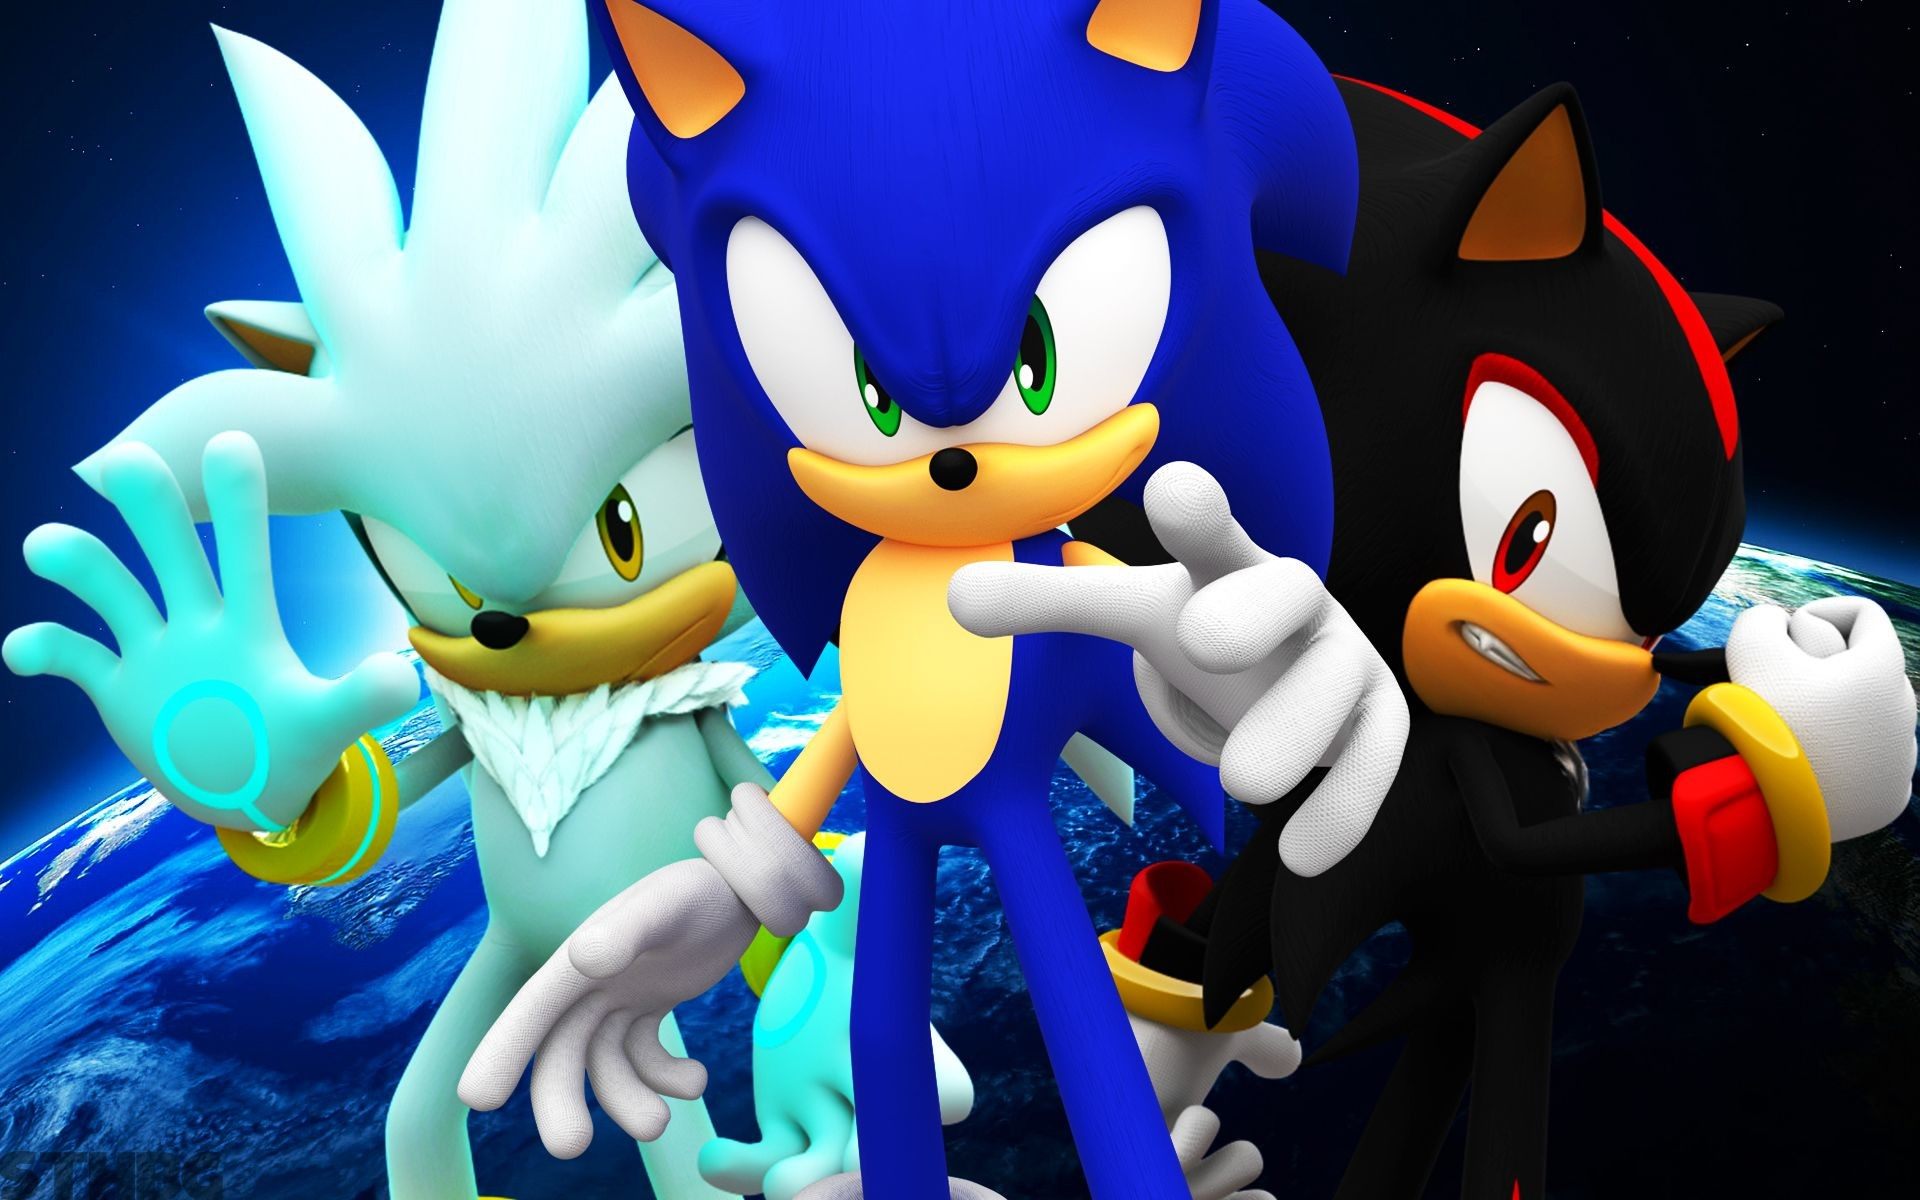 1920x1200 Sonic, Shadow, Silver, Blaze, Knuckles - Wallpaper by .